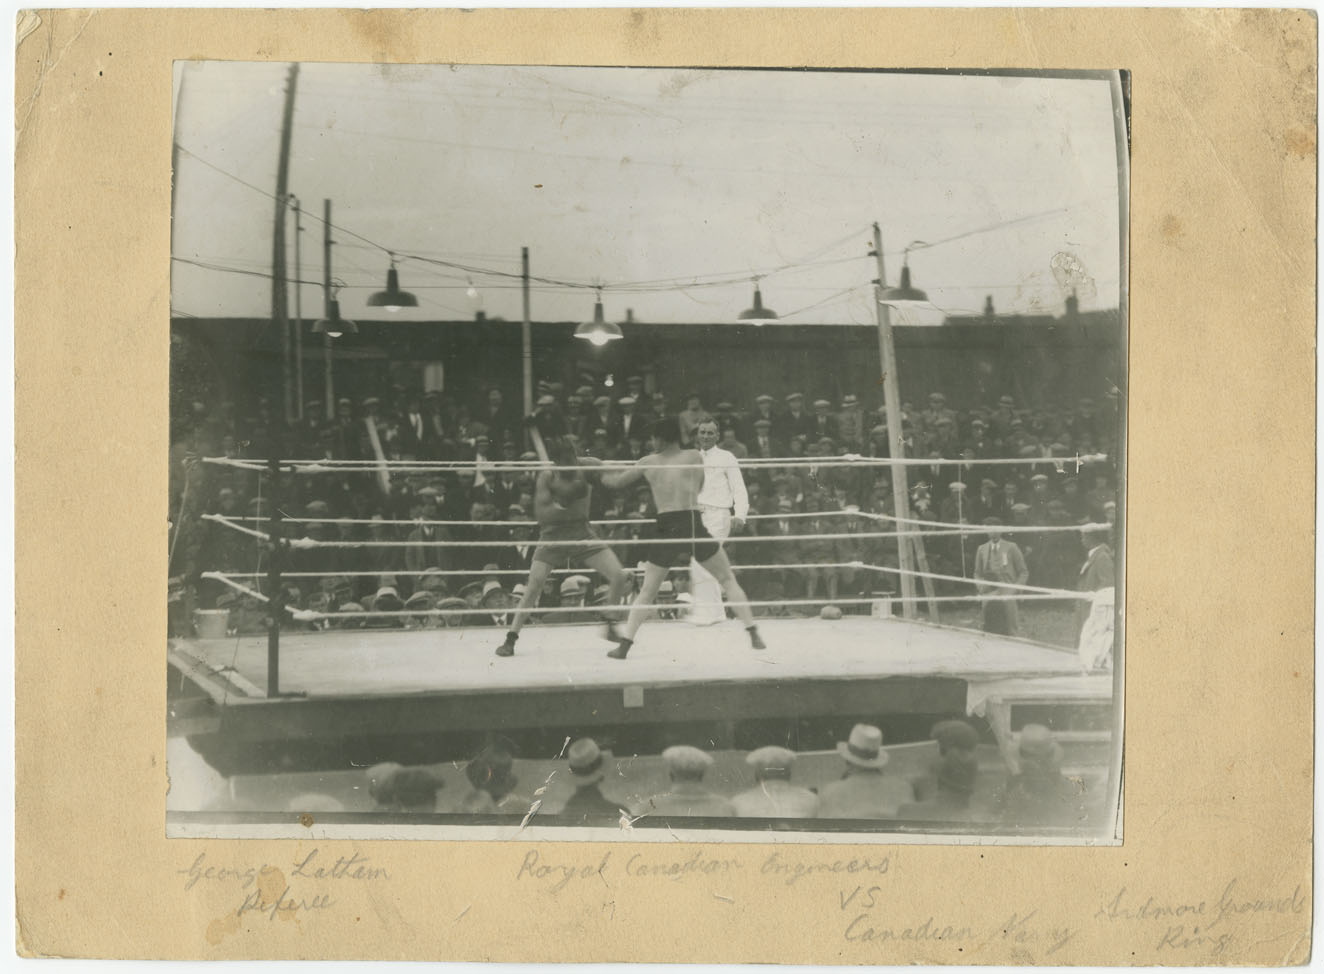 Royal Canadian Engineers VS Canadian Navy at the Ardmore Grounds Ring